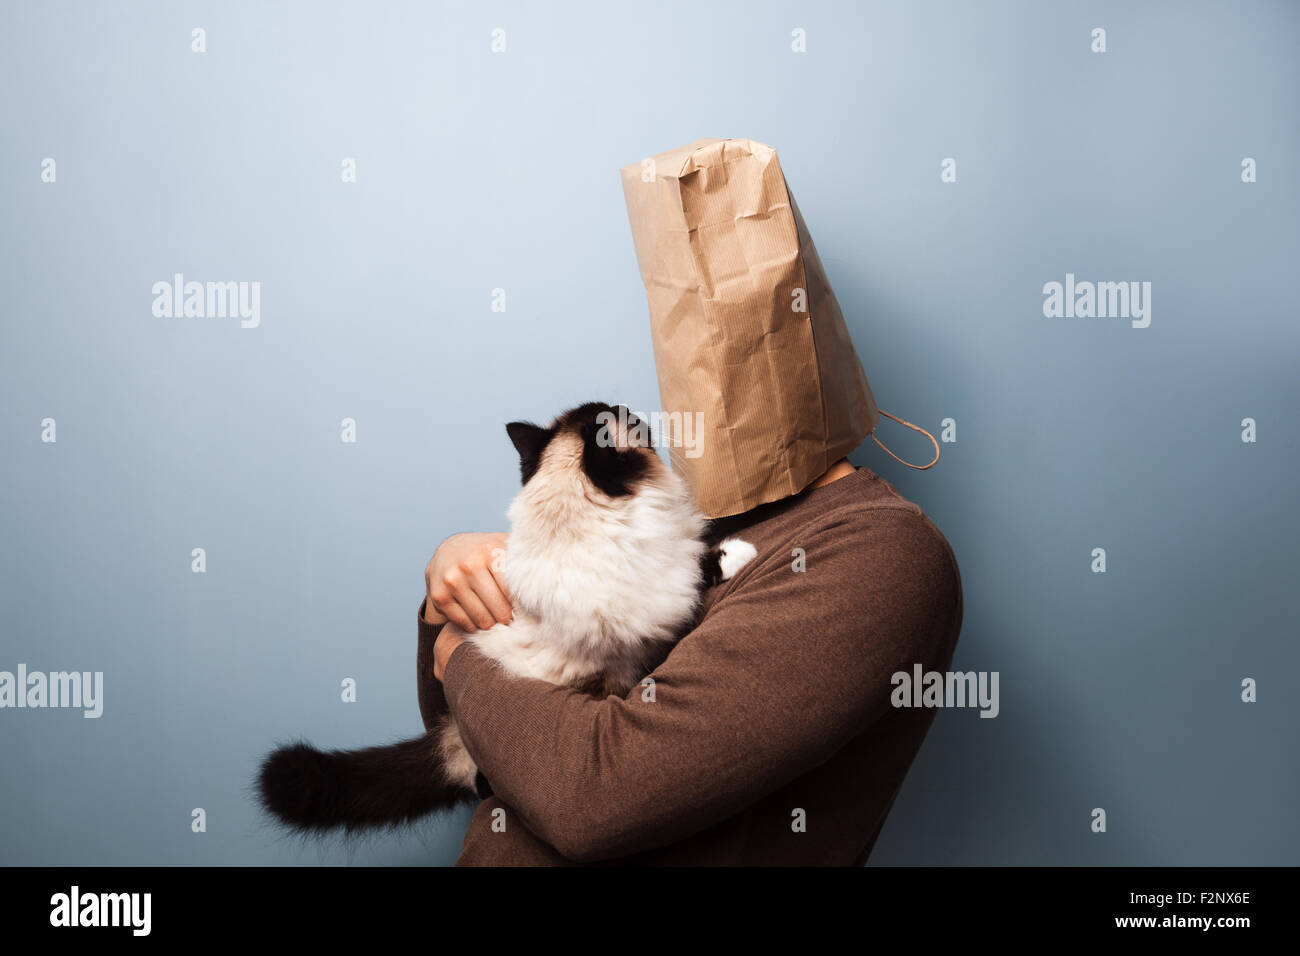 a man with a paper bag on his head is holding a confused cat. - Stock Image